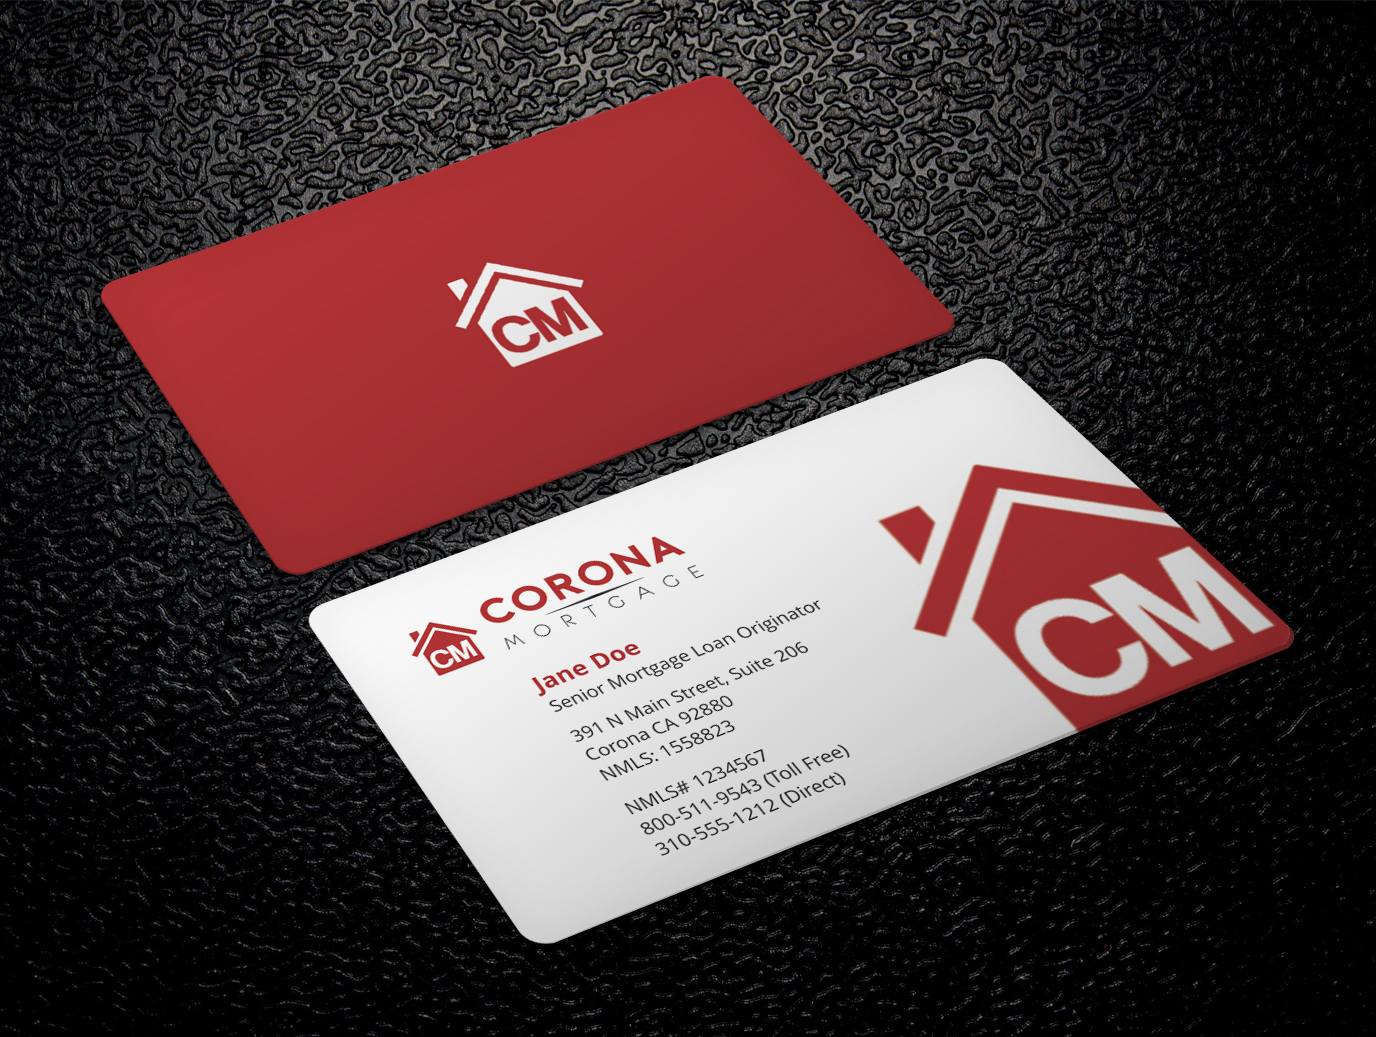 Modern upmarket mortgage lender business card design for a company business card design by xpert for this project design 17324566 reheart Choice Image